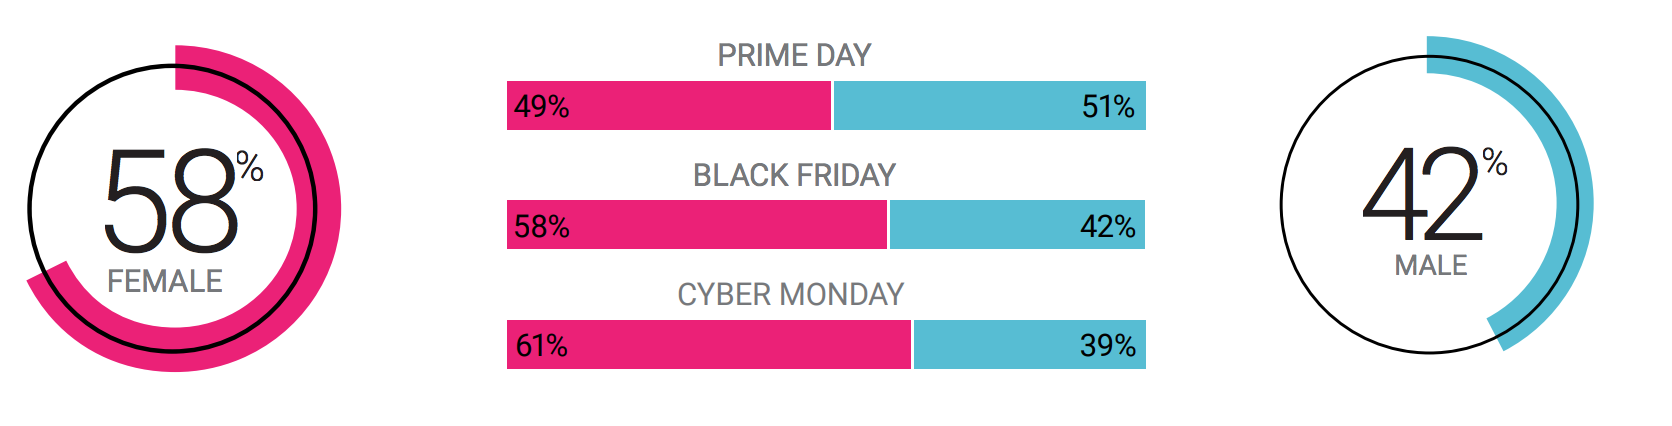 social listening demographics for retail brand holidays